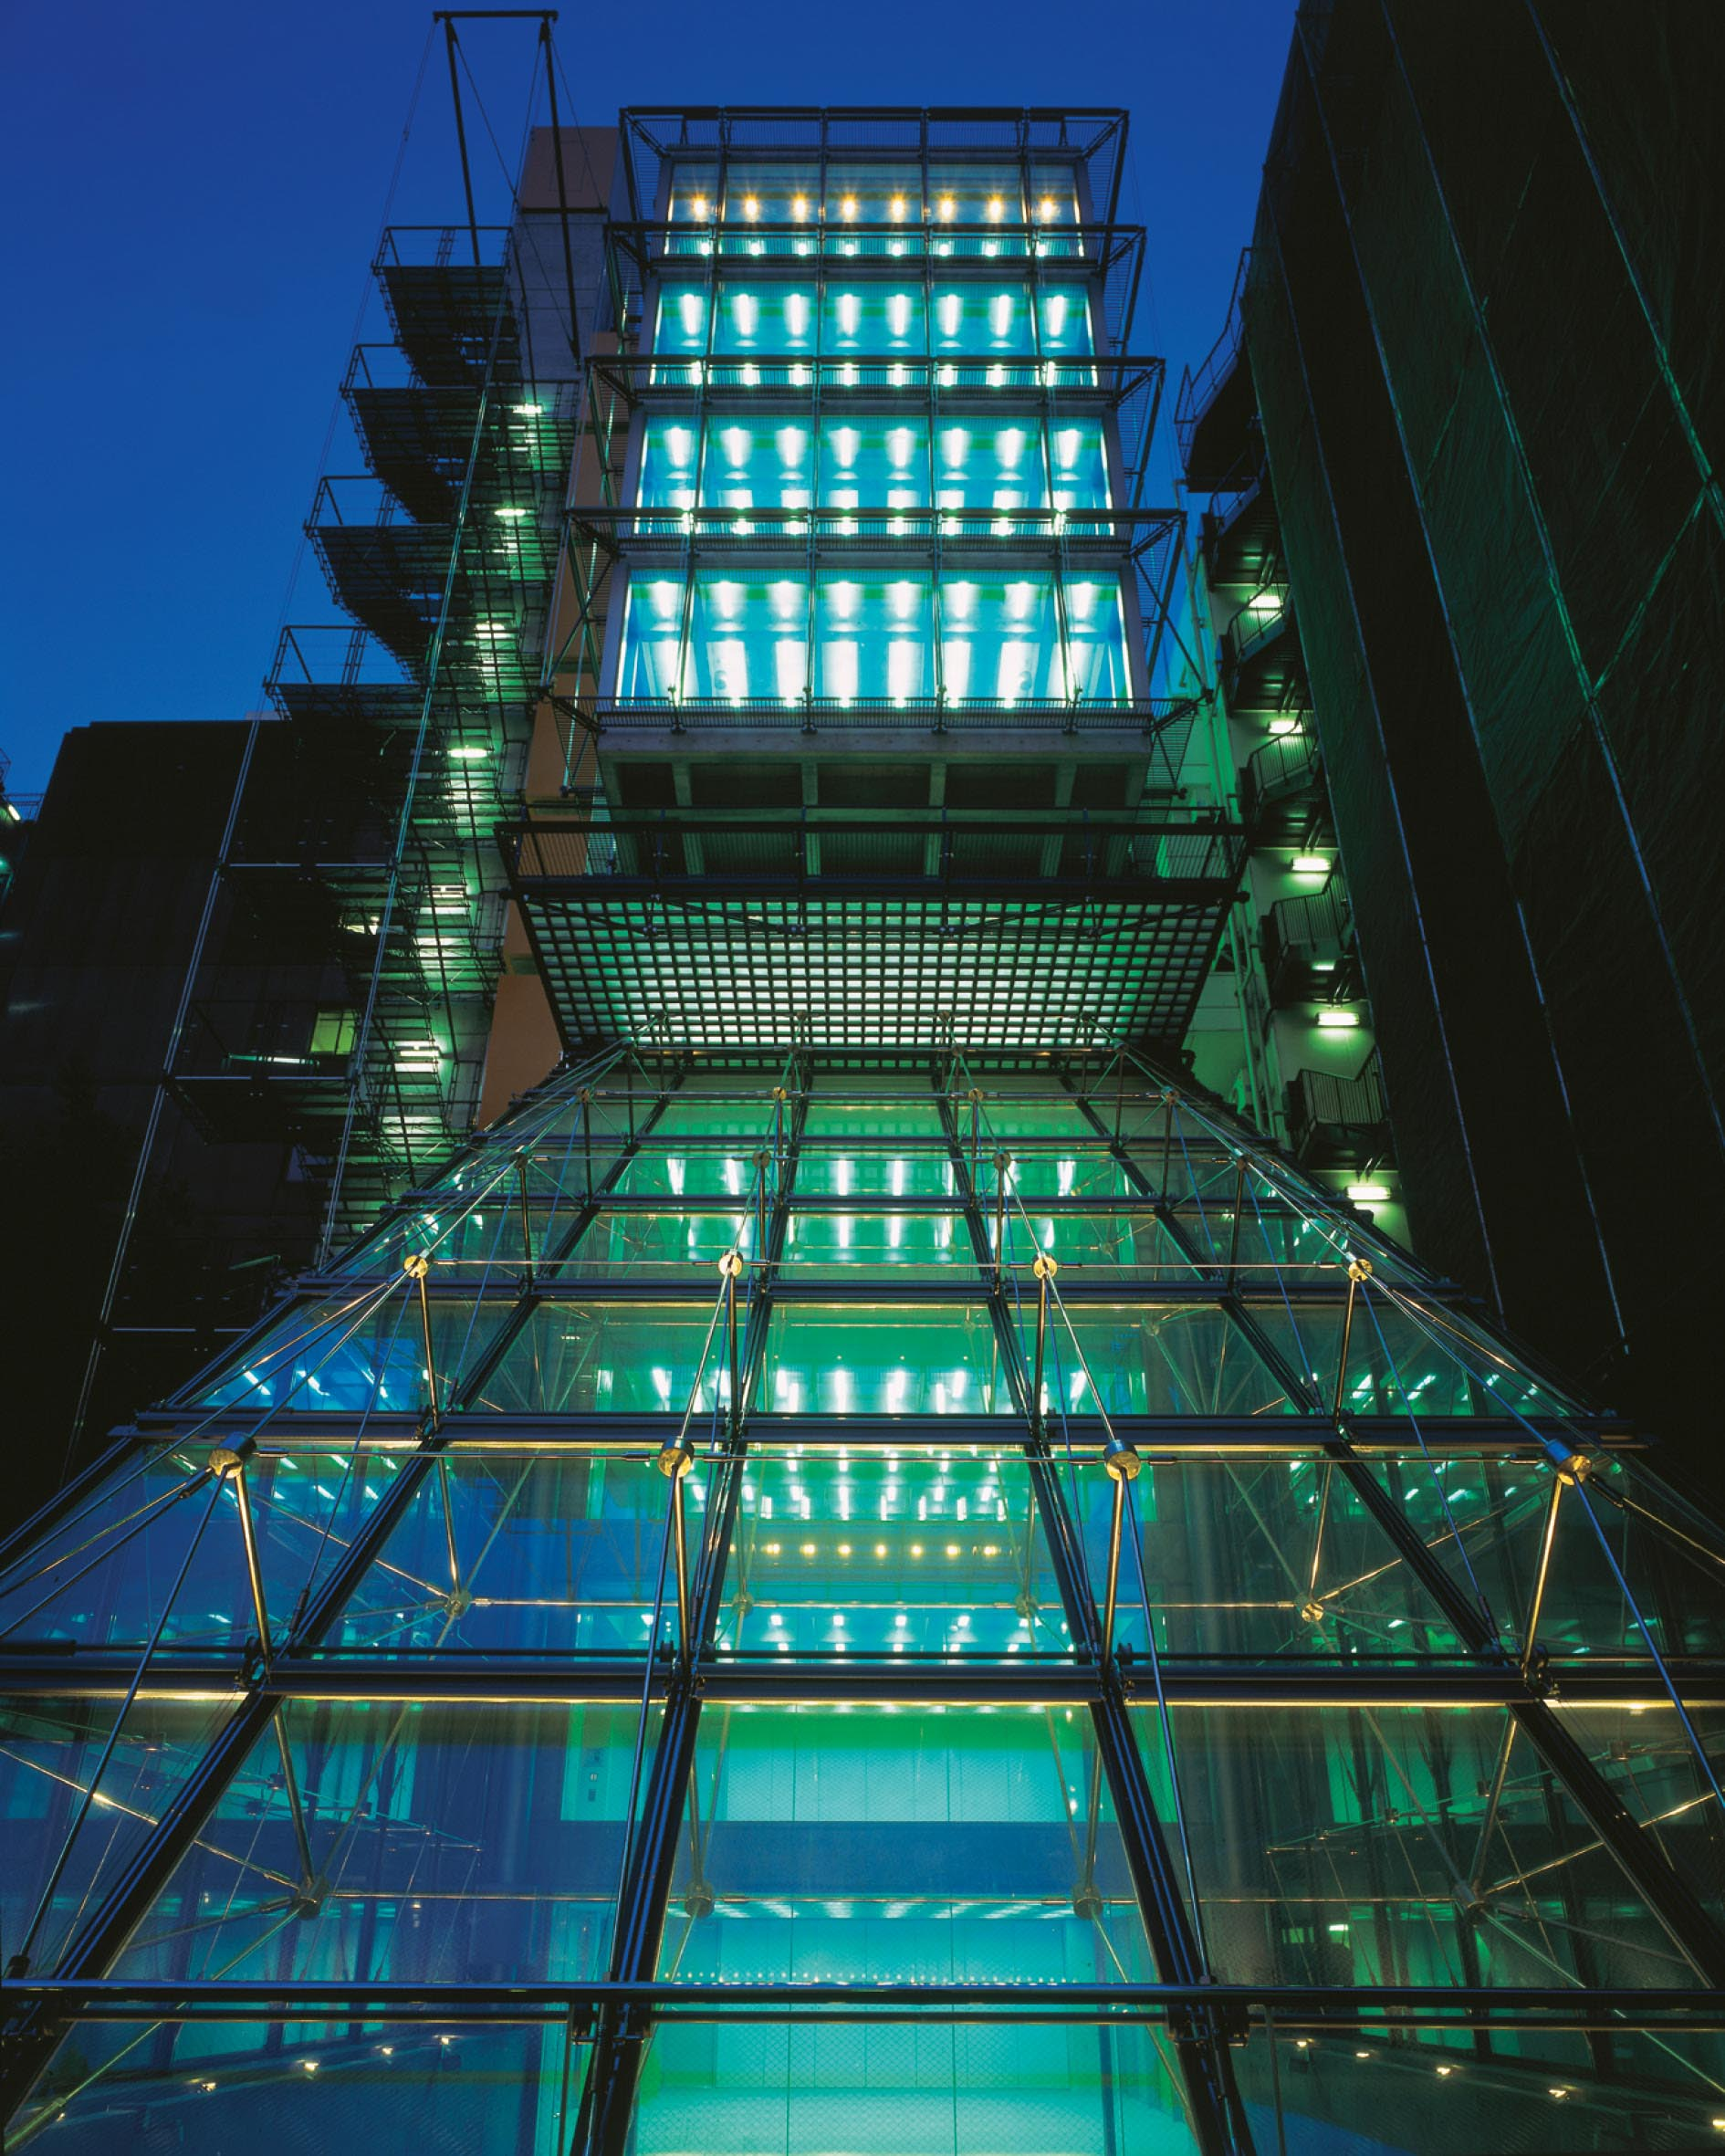 Located in the Shinjuku 新宿区 district of Tokyo Stuart Forbes worked on this project whilst at Rogers Stirk Harbour + Partners : address オアシス21ビル. The building won a RIBA International Award in 1993